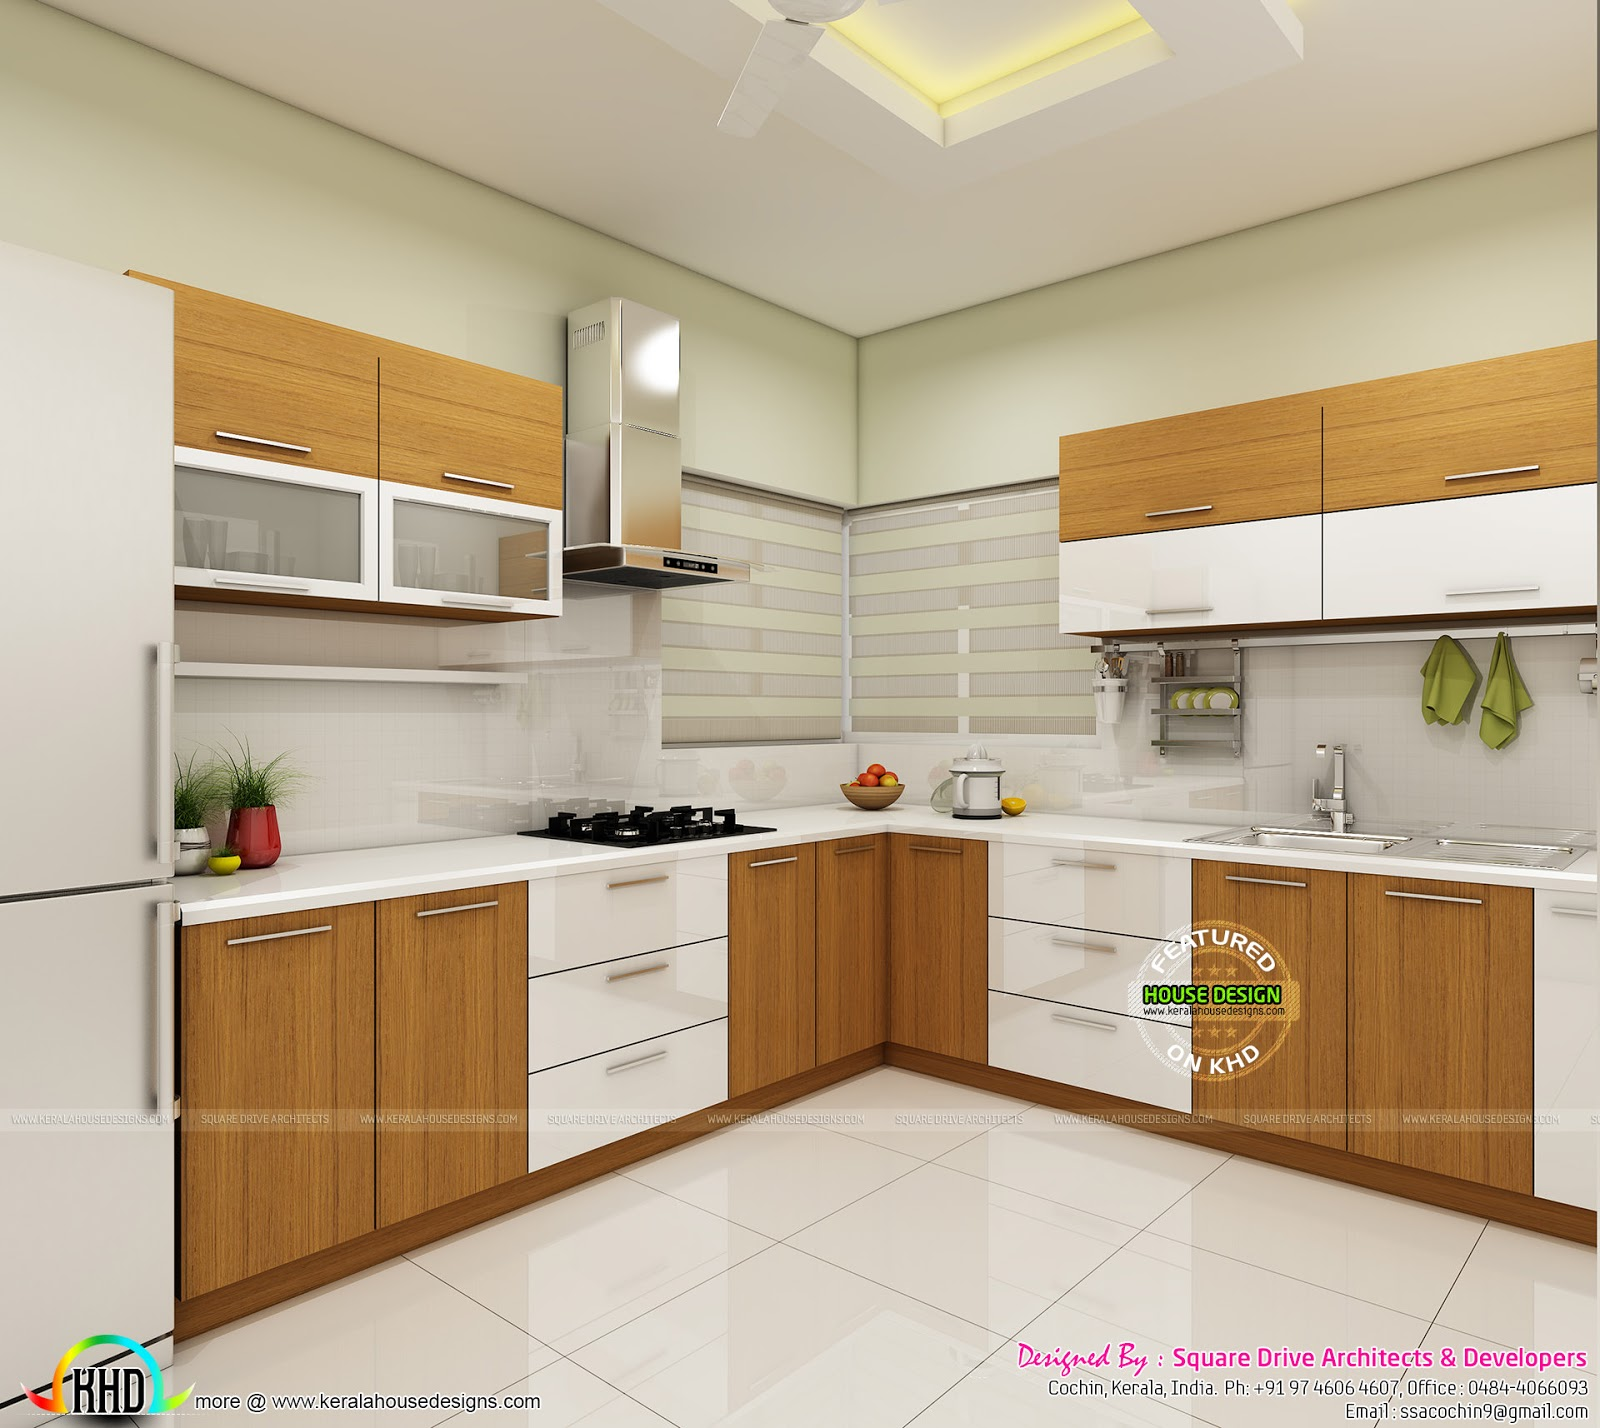 House Interior Design Kitchen: Modern Home Interiors Of Bedroom, Dining, Kitchen